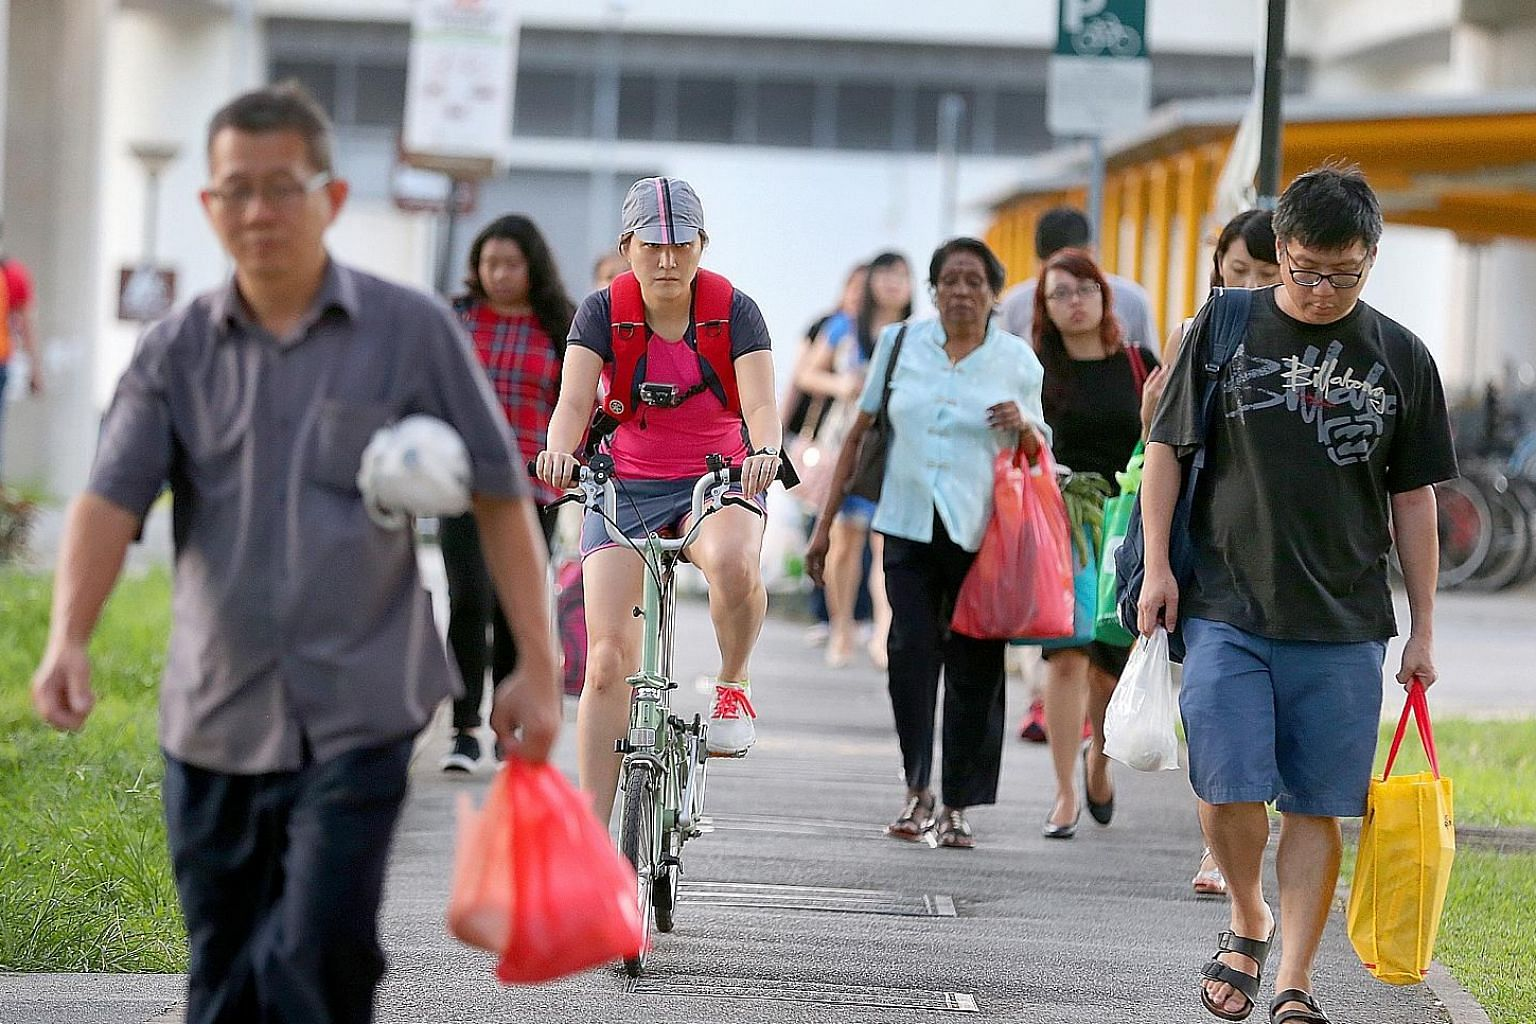 If Singapore were to promote cycling and the use of other mobility devices, it must do more than having rules govern their use on pedestrian walkways, says the writer. This is because having bikes and scooters on pathways will make walking less comfo